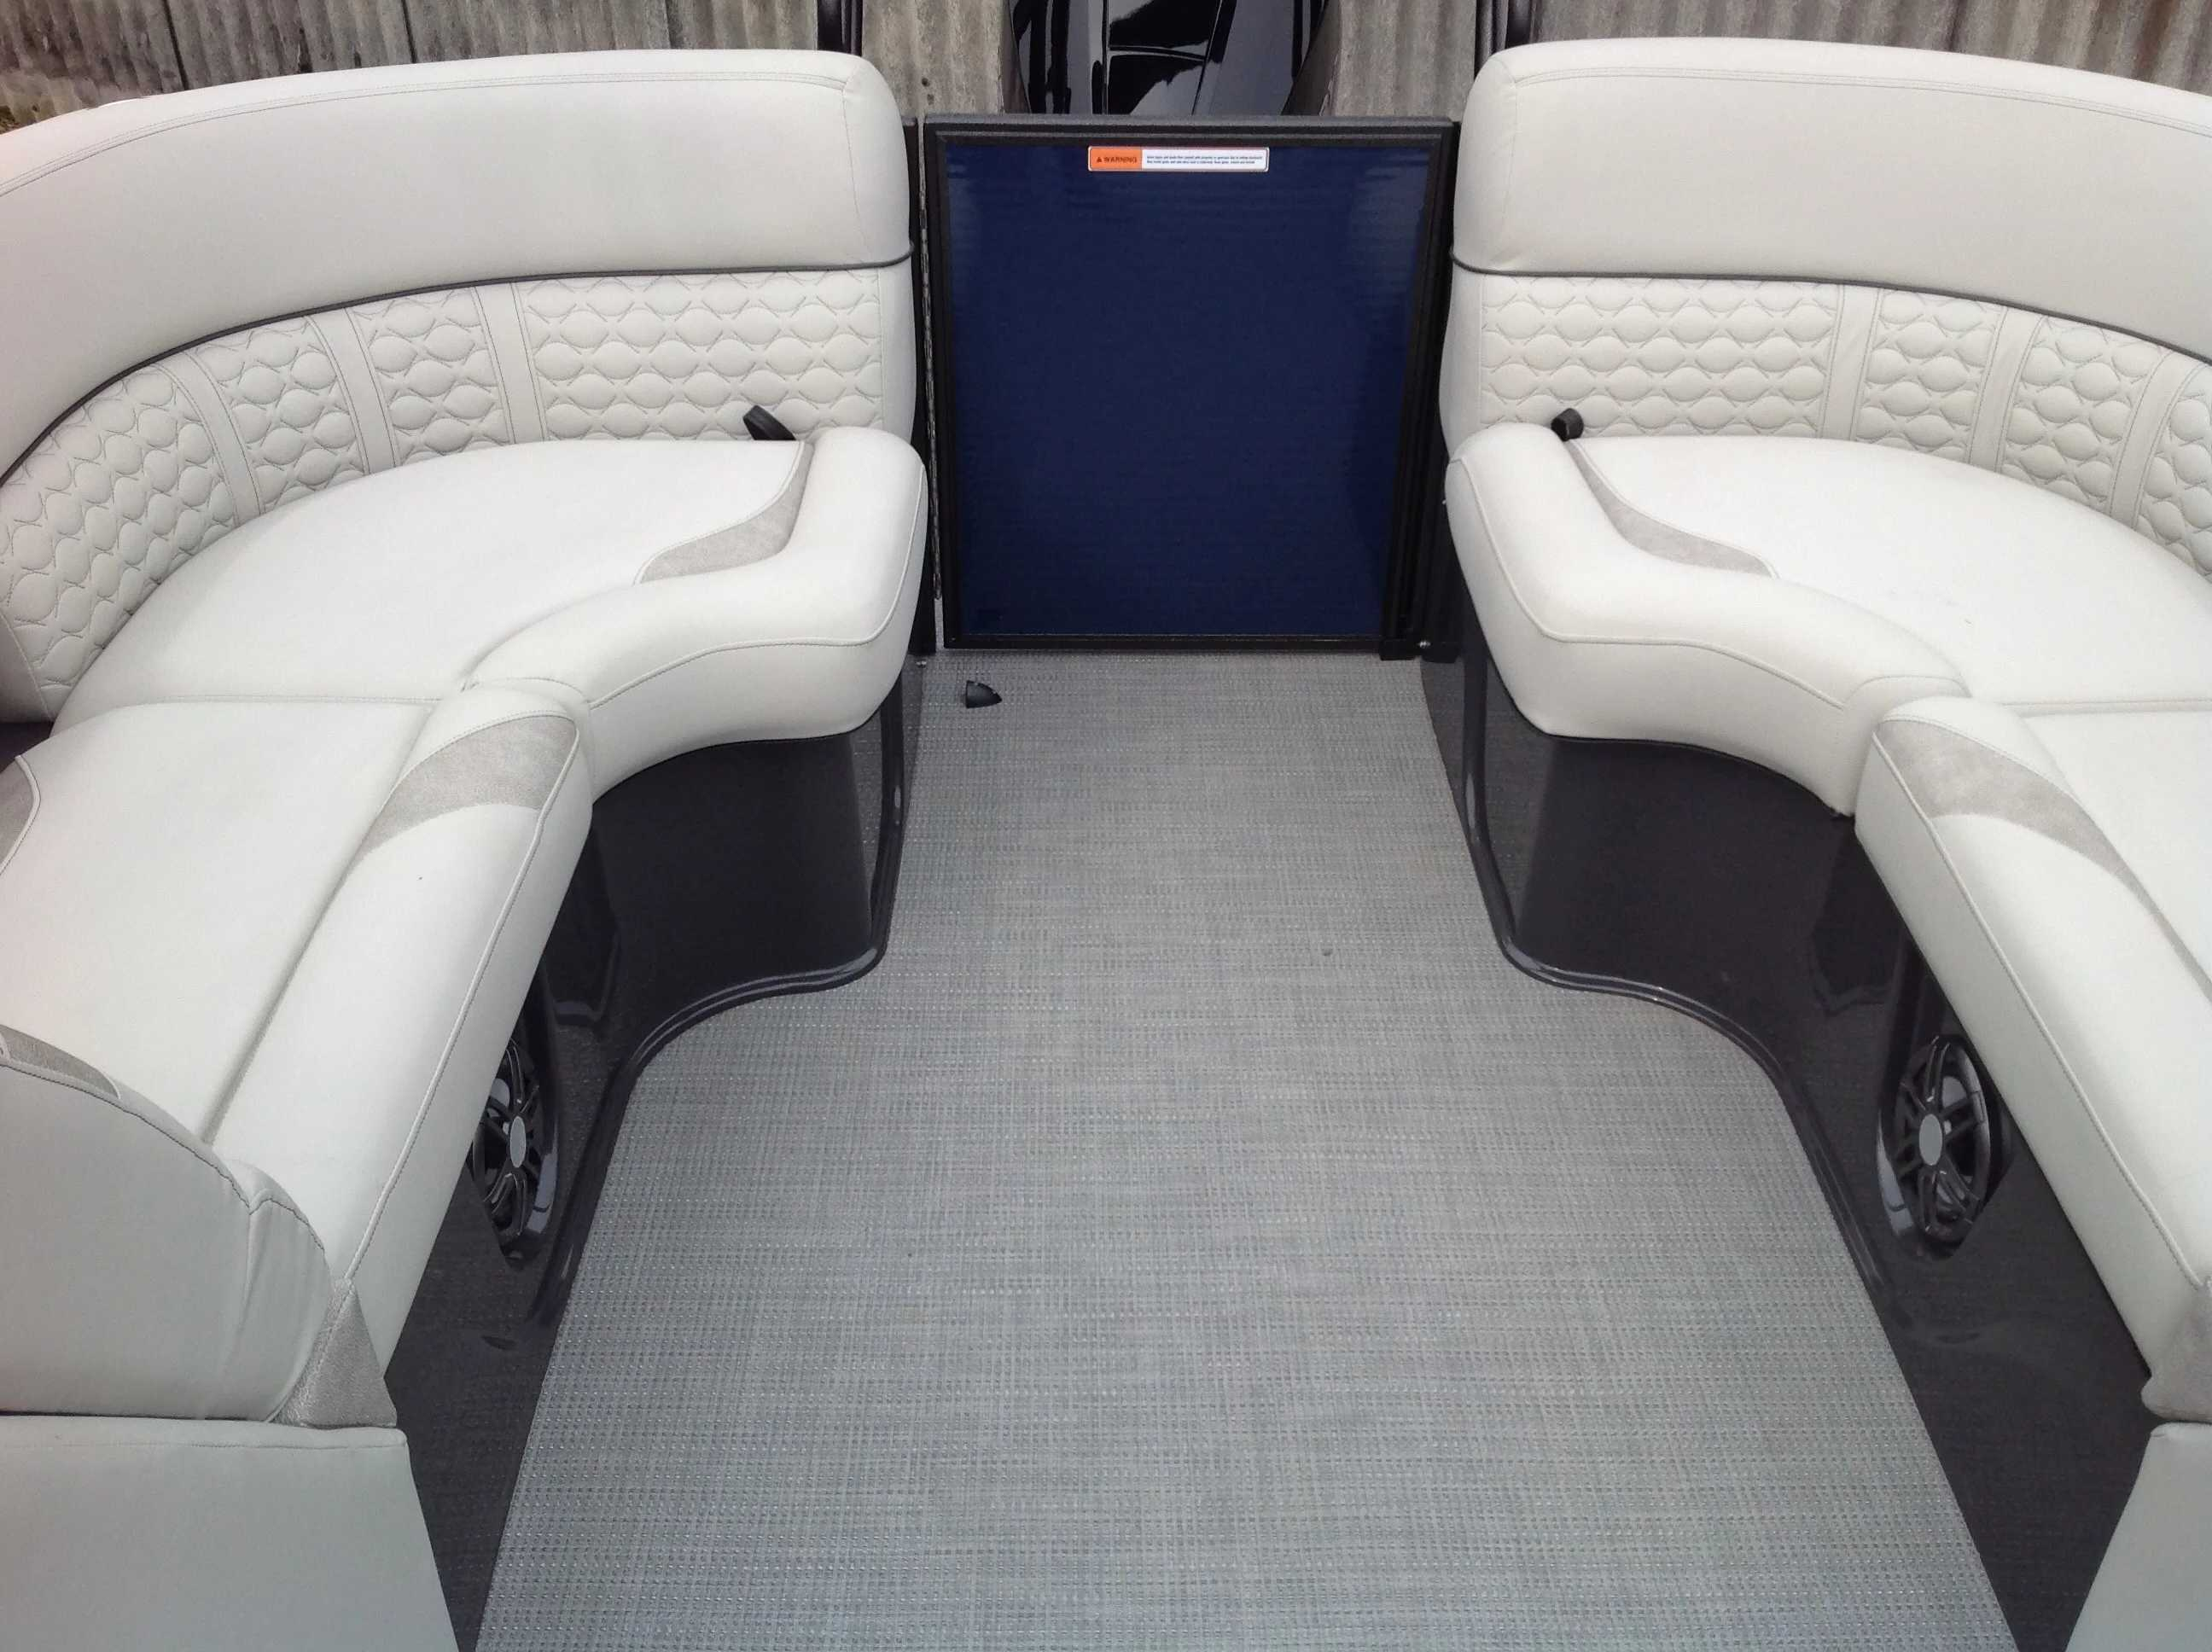 2020 Crest boat for sale, model of the boat is Caribbean Lx250 Slc & Image # 12 of 16